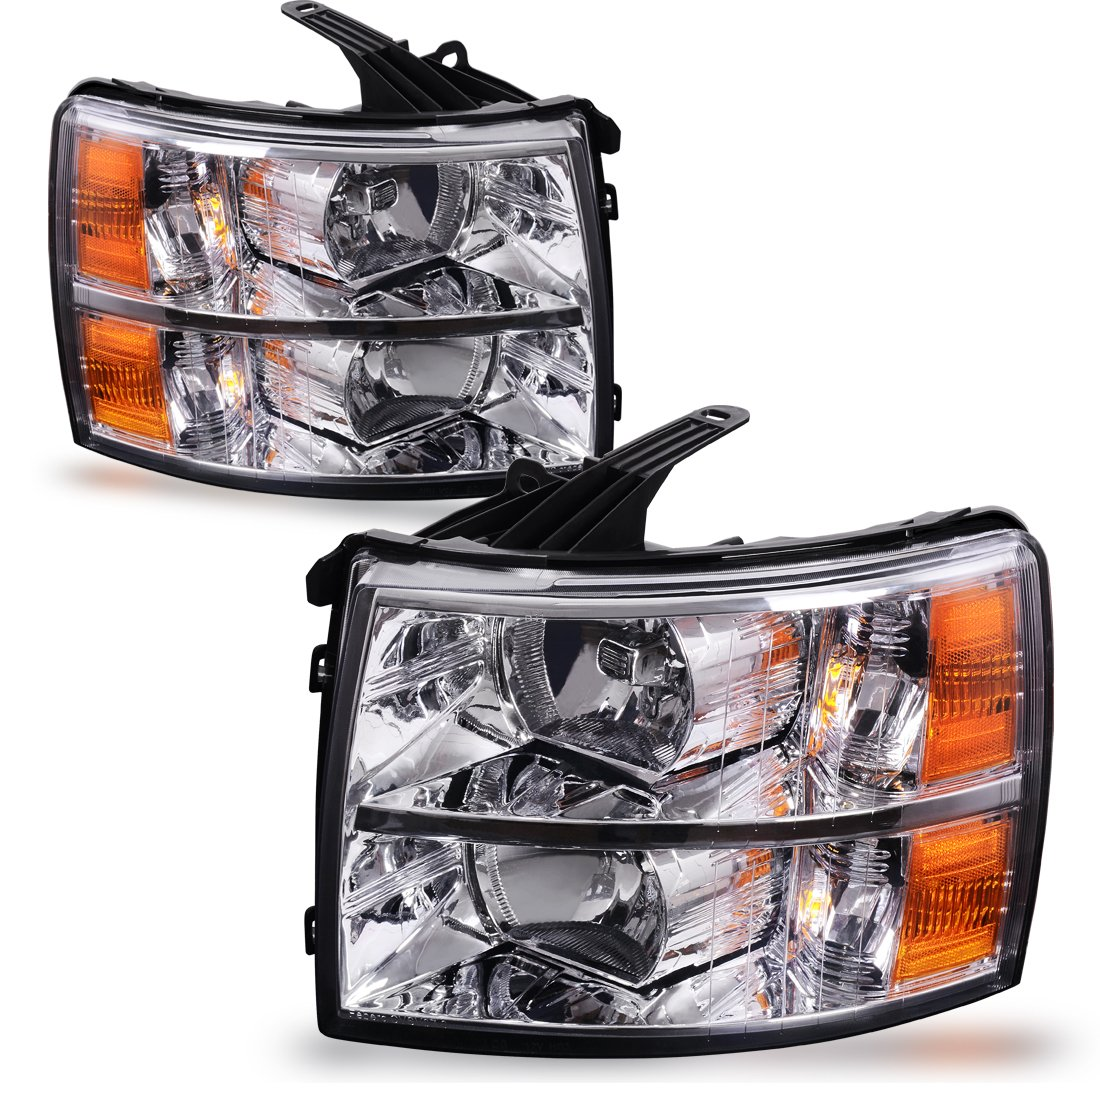 Headlight Assembly For 2007 2014 Chevy Silverado 2013 Truck Wiring Replacement Headlamp Driving Light Chrome Housing Amber Reflector Clear Lens2 Year Warranty